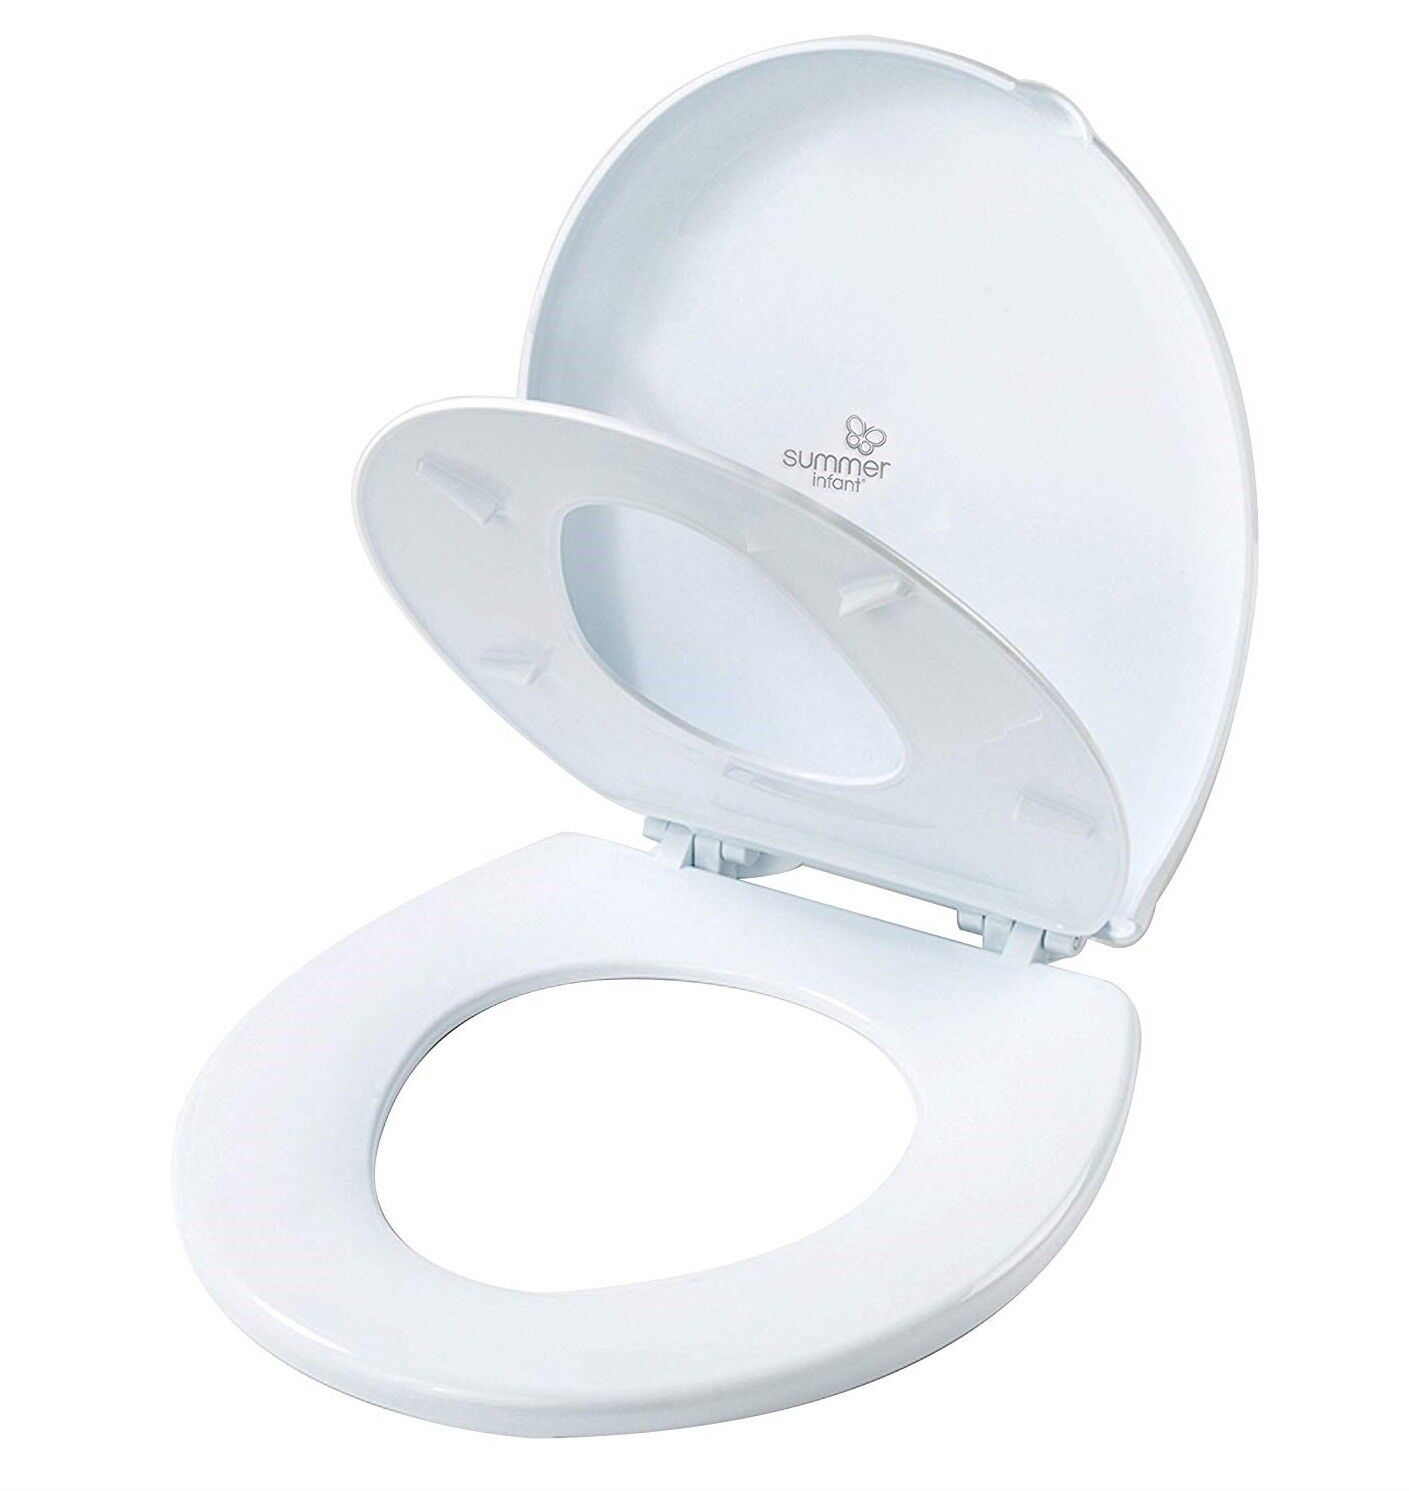 Summer Infant 2-in-1 Toilet Trainer  - Potty Training Seat -